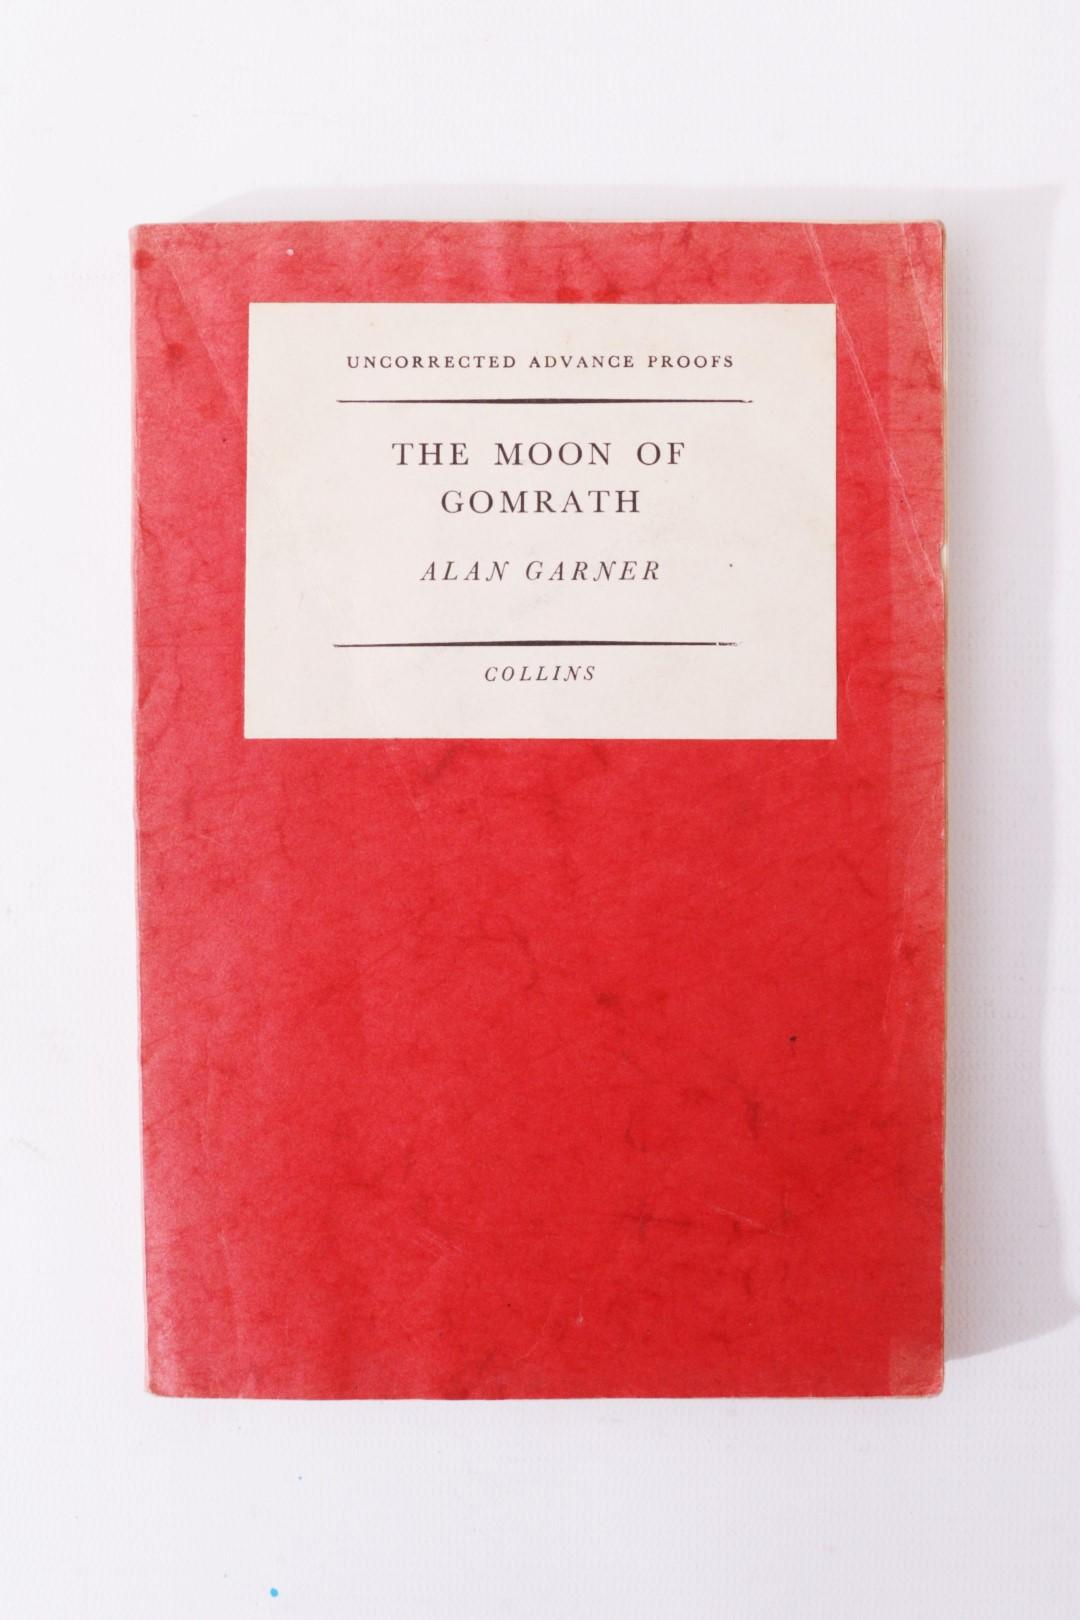 Alan Garner - The Moon of Gomrath - Collins, 1963, Proof.